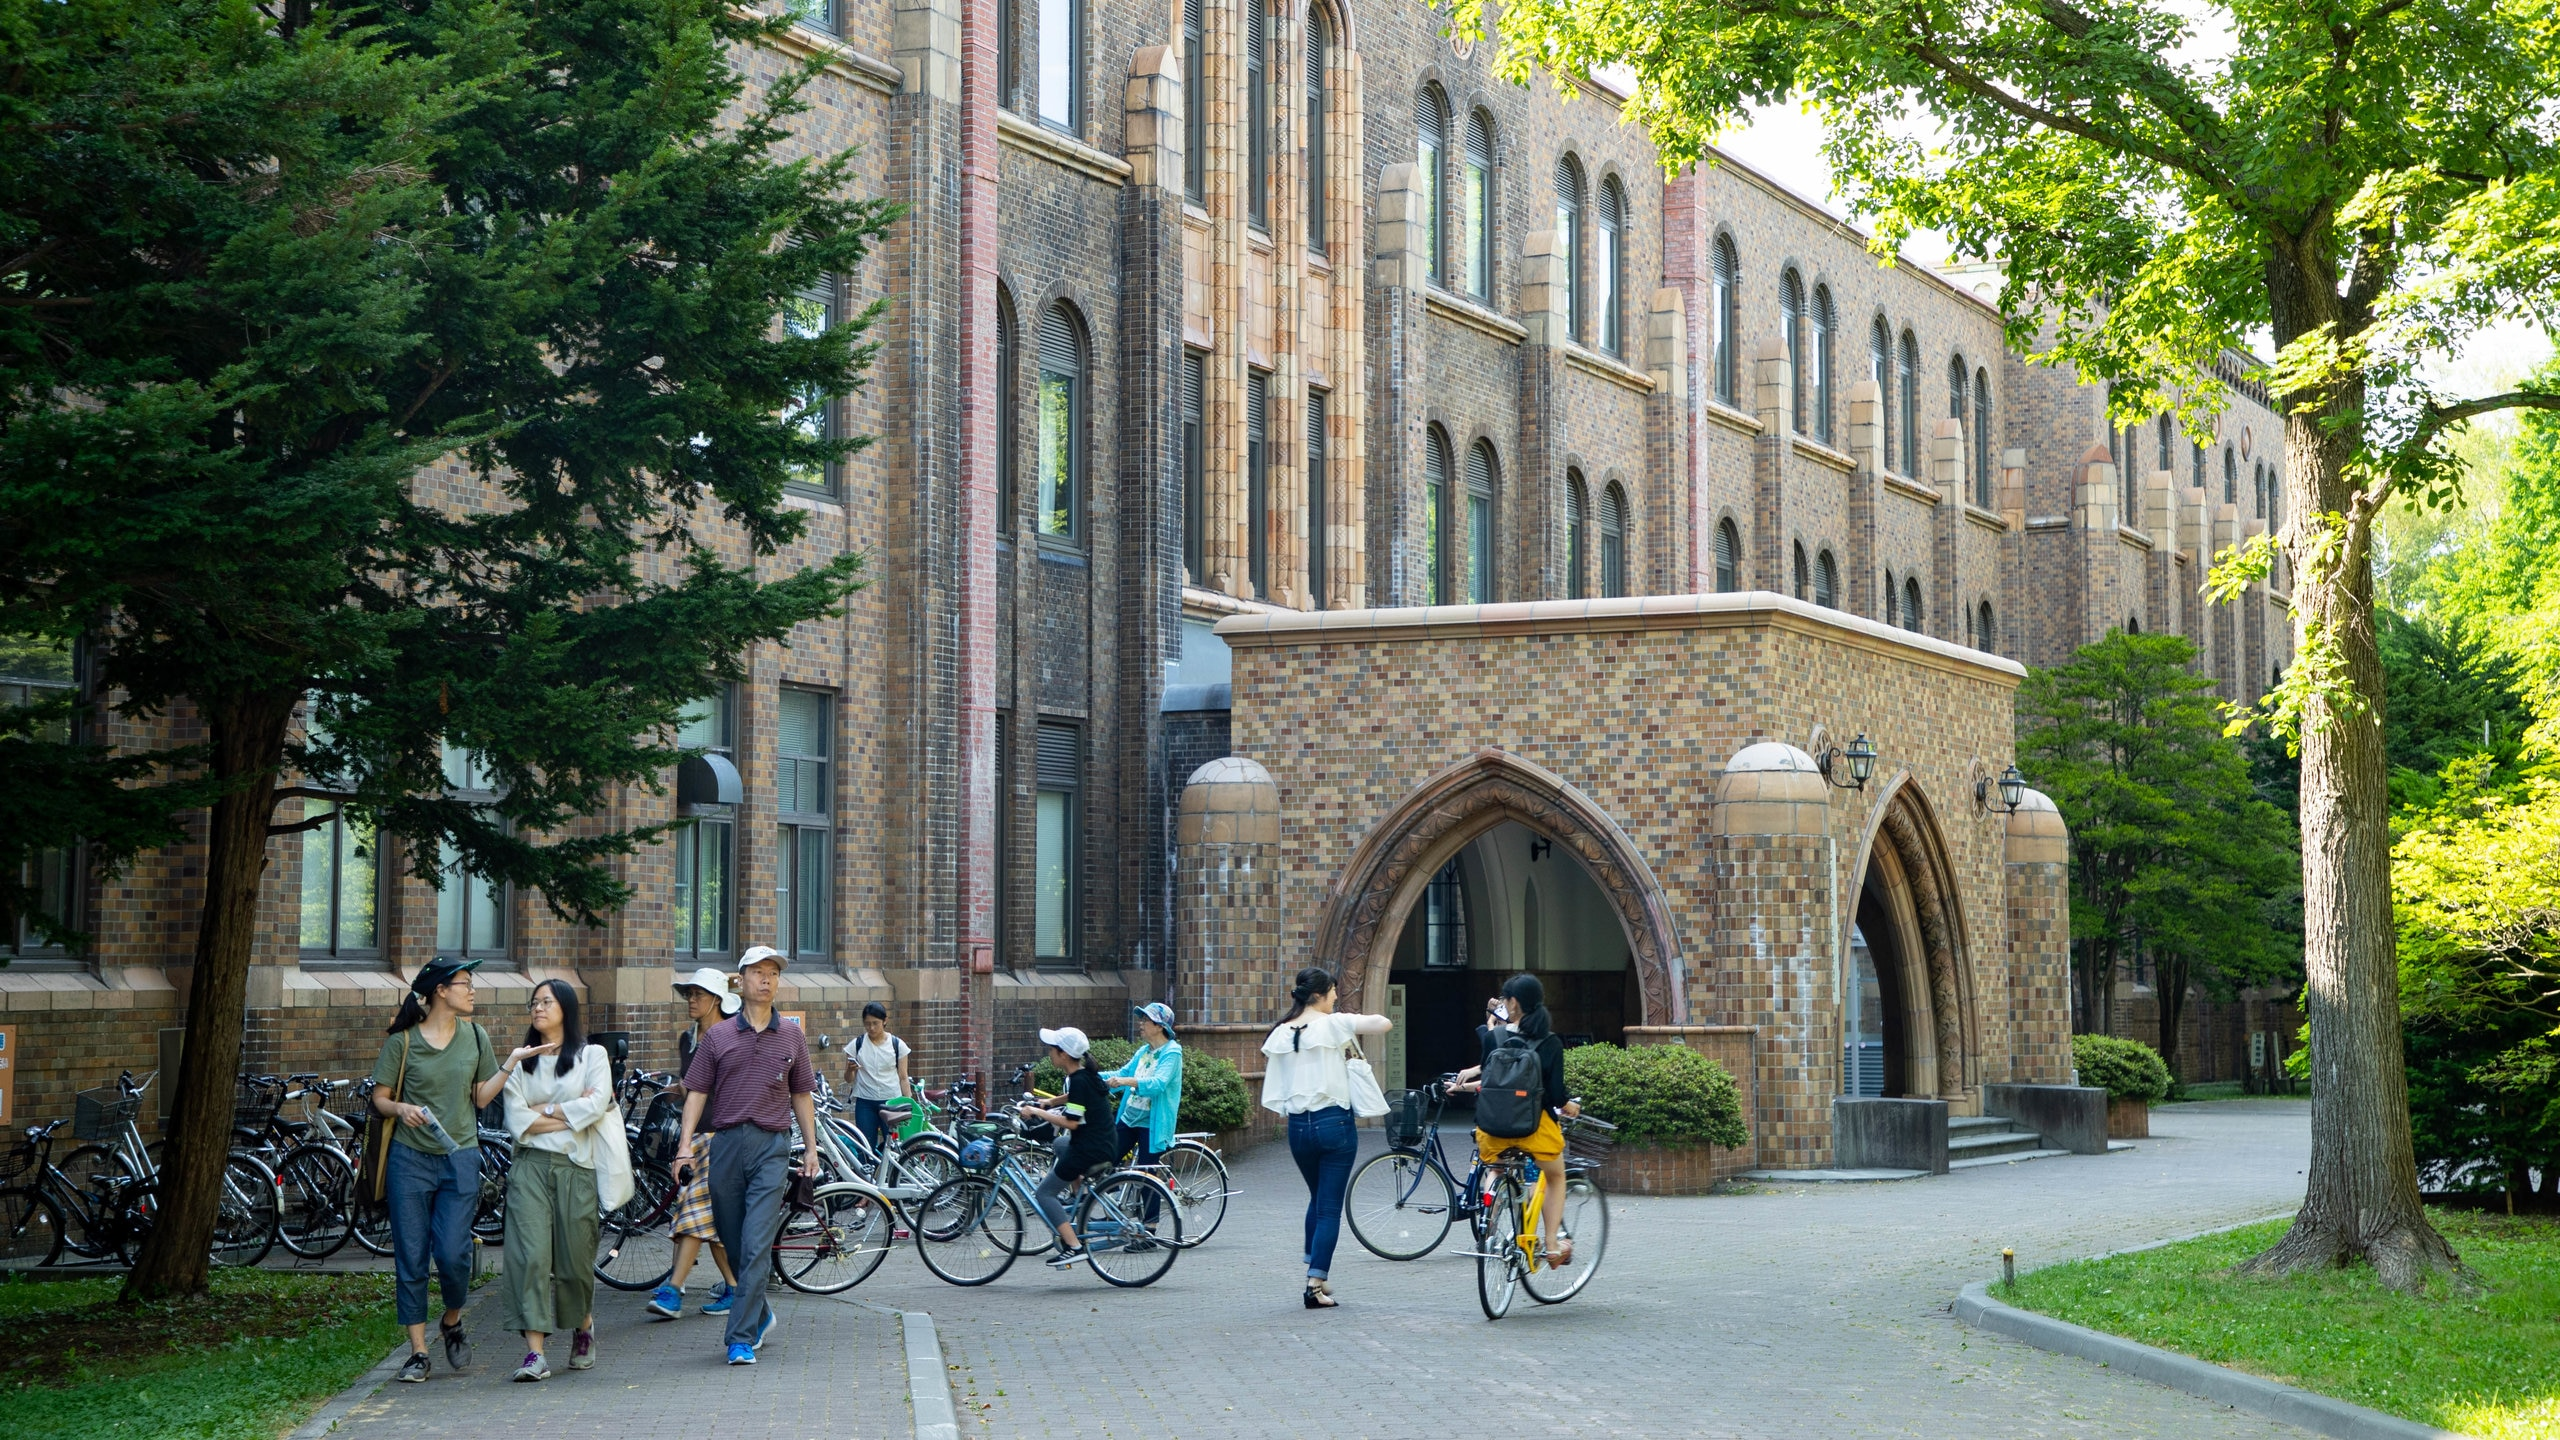 Enjoy a day in the life of Sapporo's university students and professors while wandering the tree-lined avenues and riverfront walks of this elegant campus.